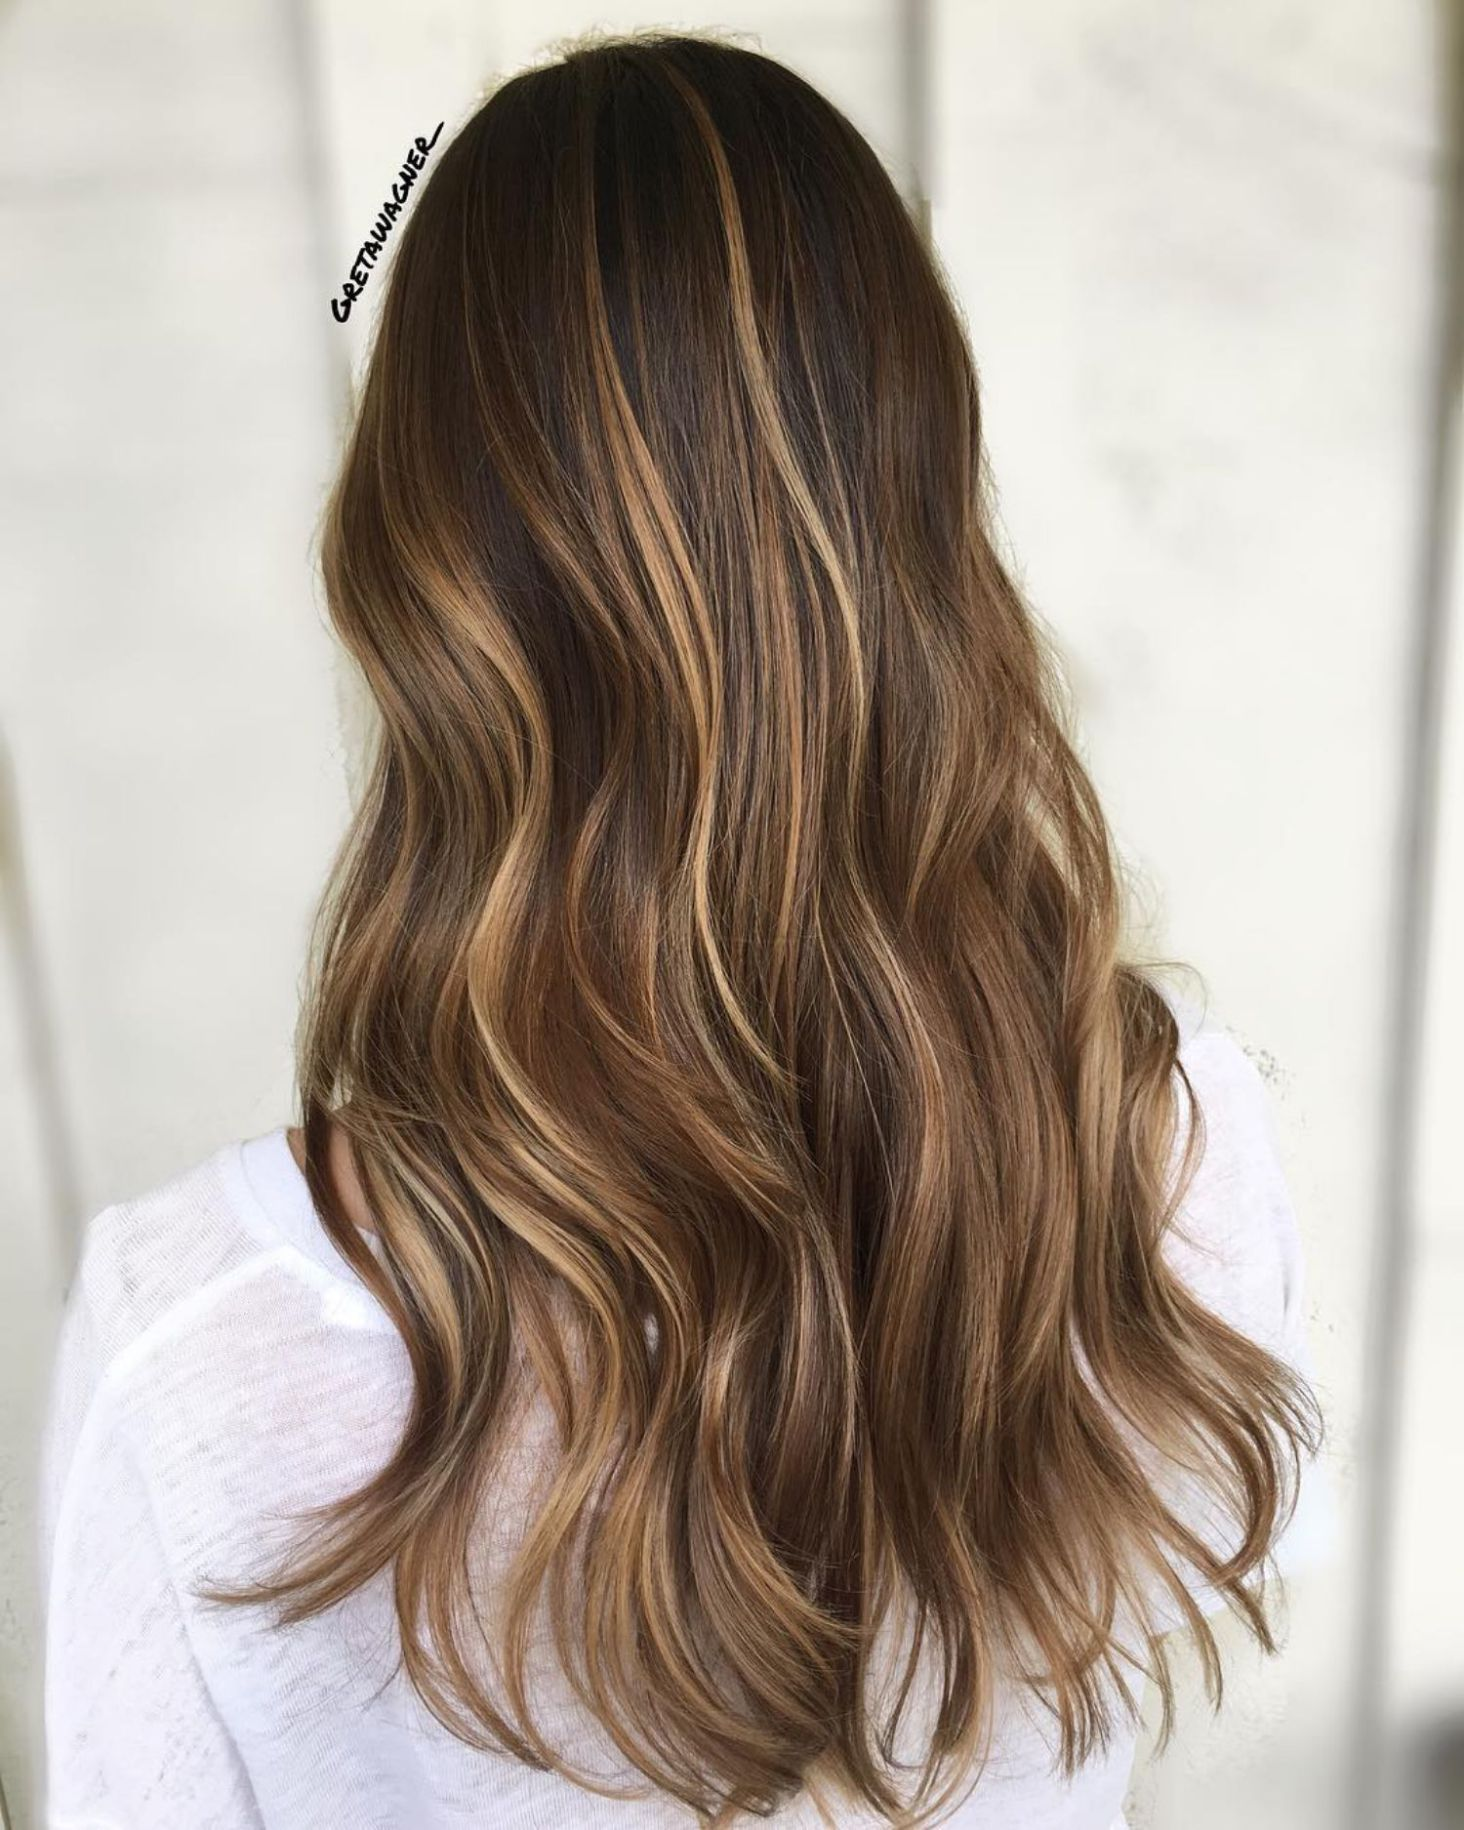 50 Ideas For Light Brown Hair With Highlights And Lowlights Brown Hair With Highlights Brown Hair With Highlights And Lowlights Long Brown Hair